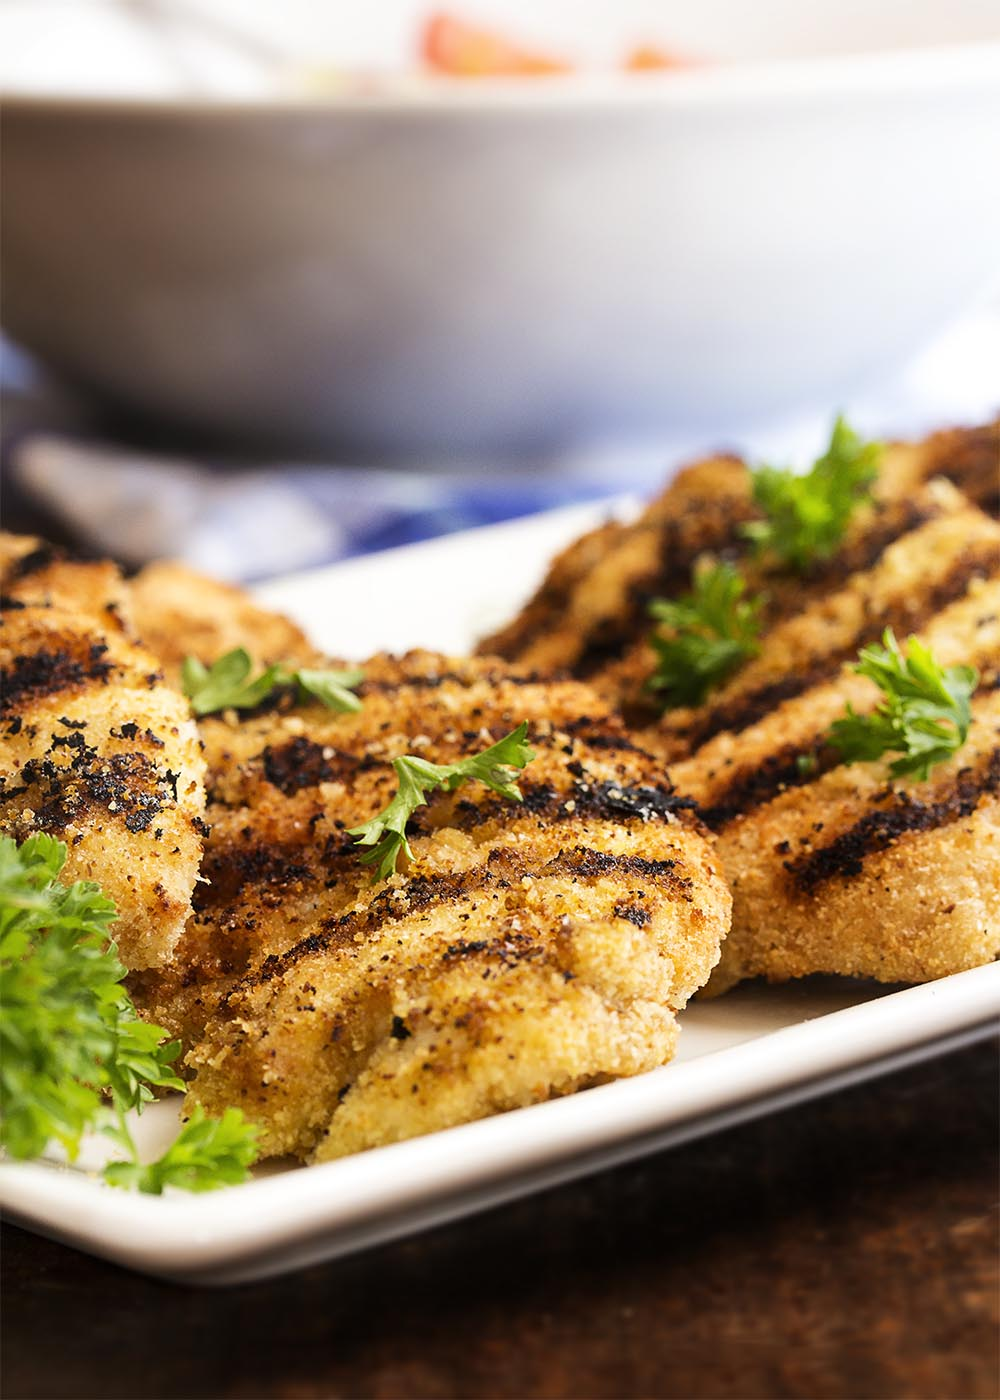 Grilled Breaded Chicken Breast - This recipe has one simple secret that  makes juicy and tender